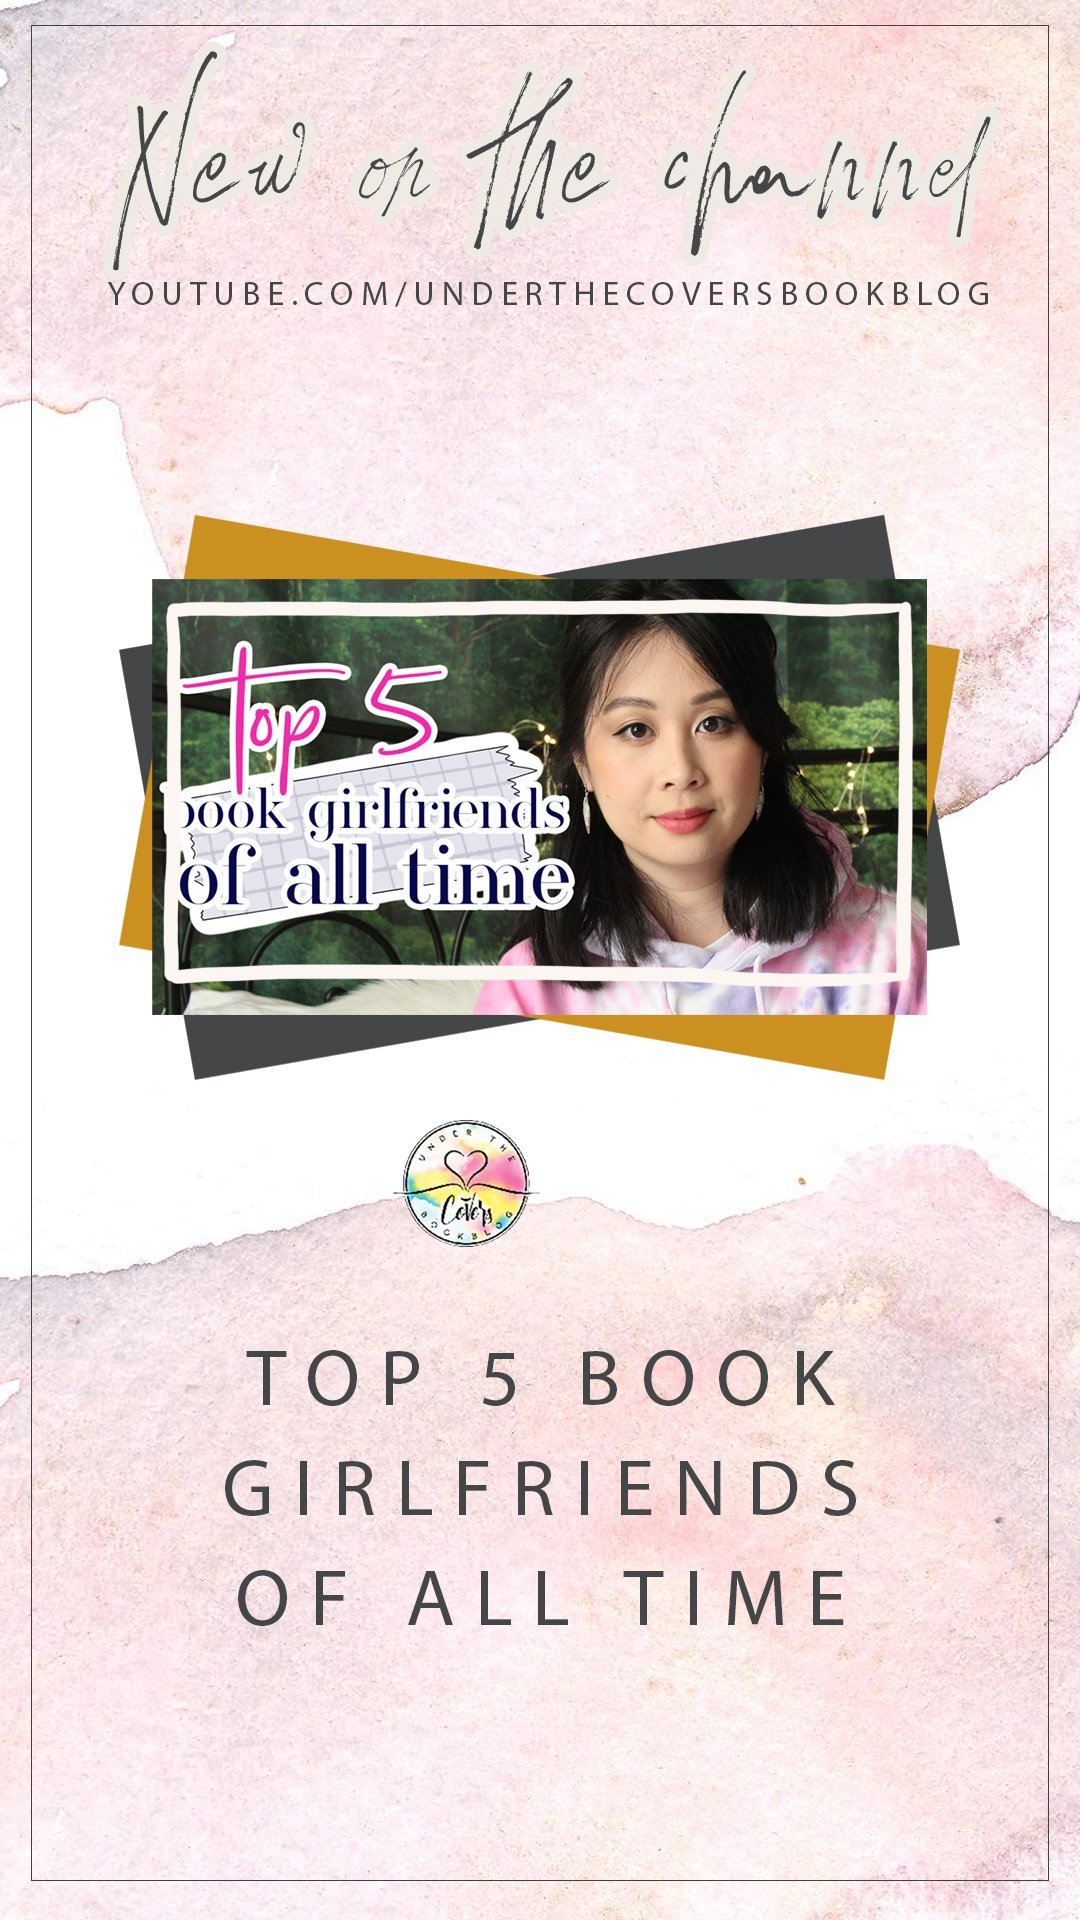 Annie's Top 5 Book Girlfriends of All Time